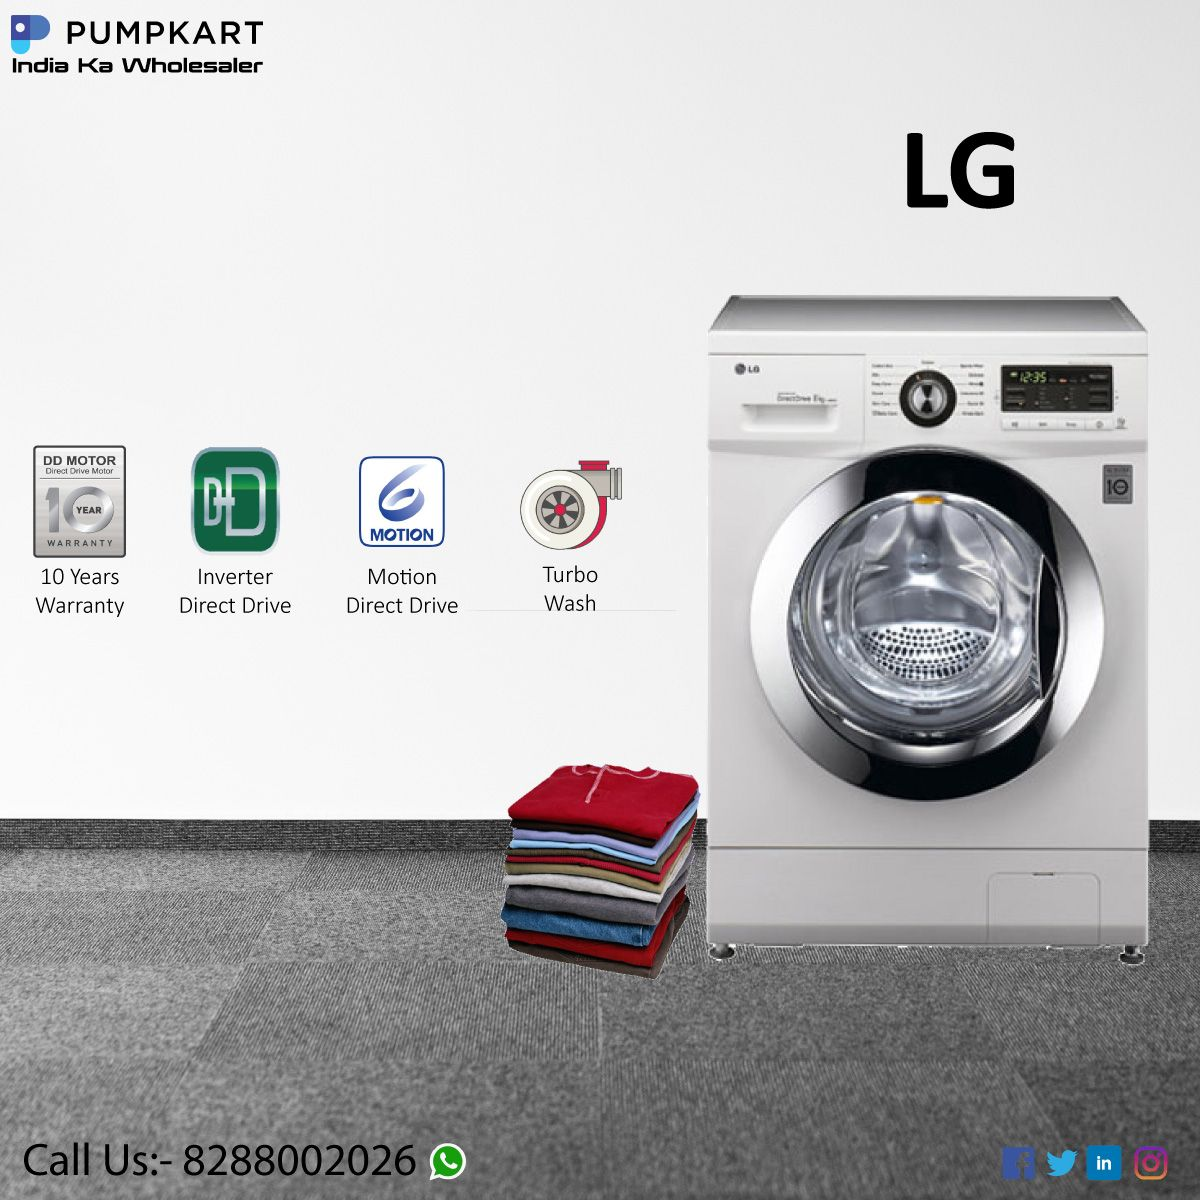 Give Comfort To Your Clothes Machine Pumpkart Lg 2020 In 2020 Machine Home Appliances Pumpk